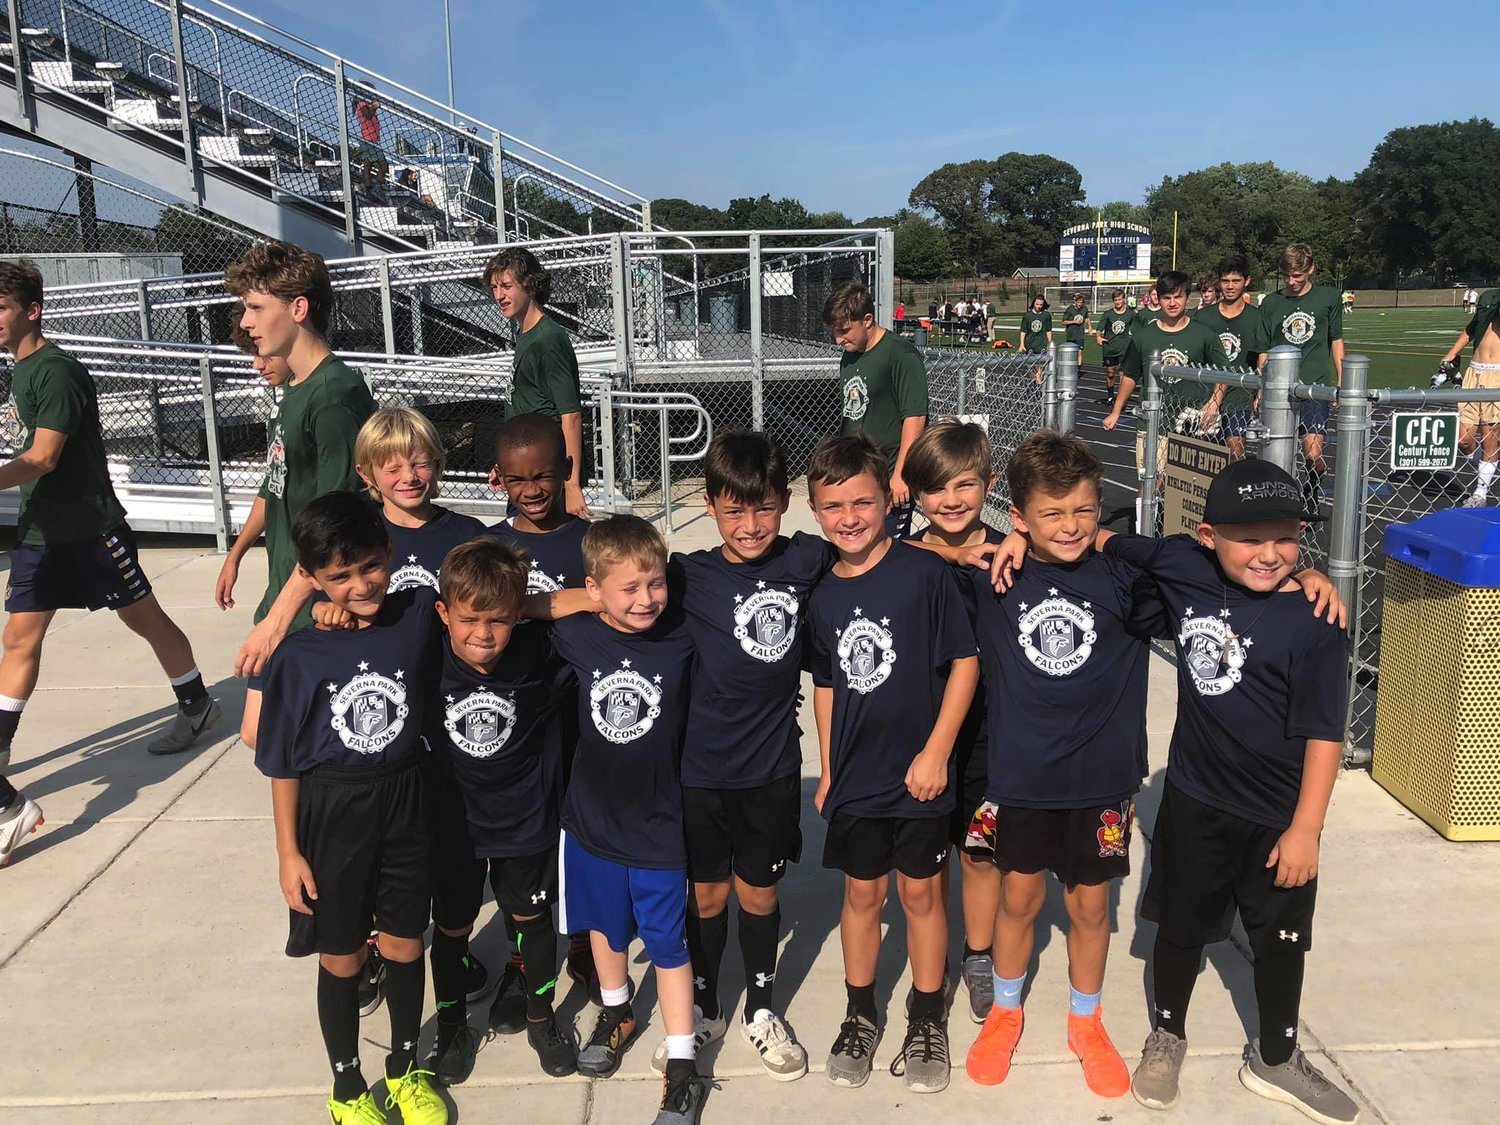 The Green Hornets took part in introductions and served as ball boys for Tuesday's varsity game against Northeast, won by the Falcons 1-0.